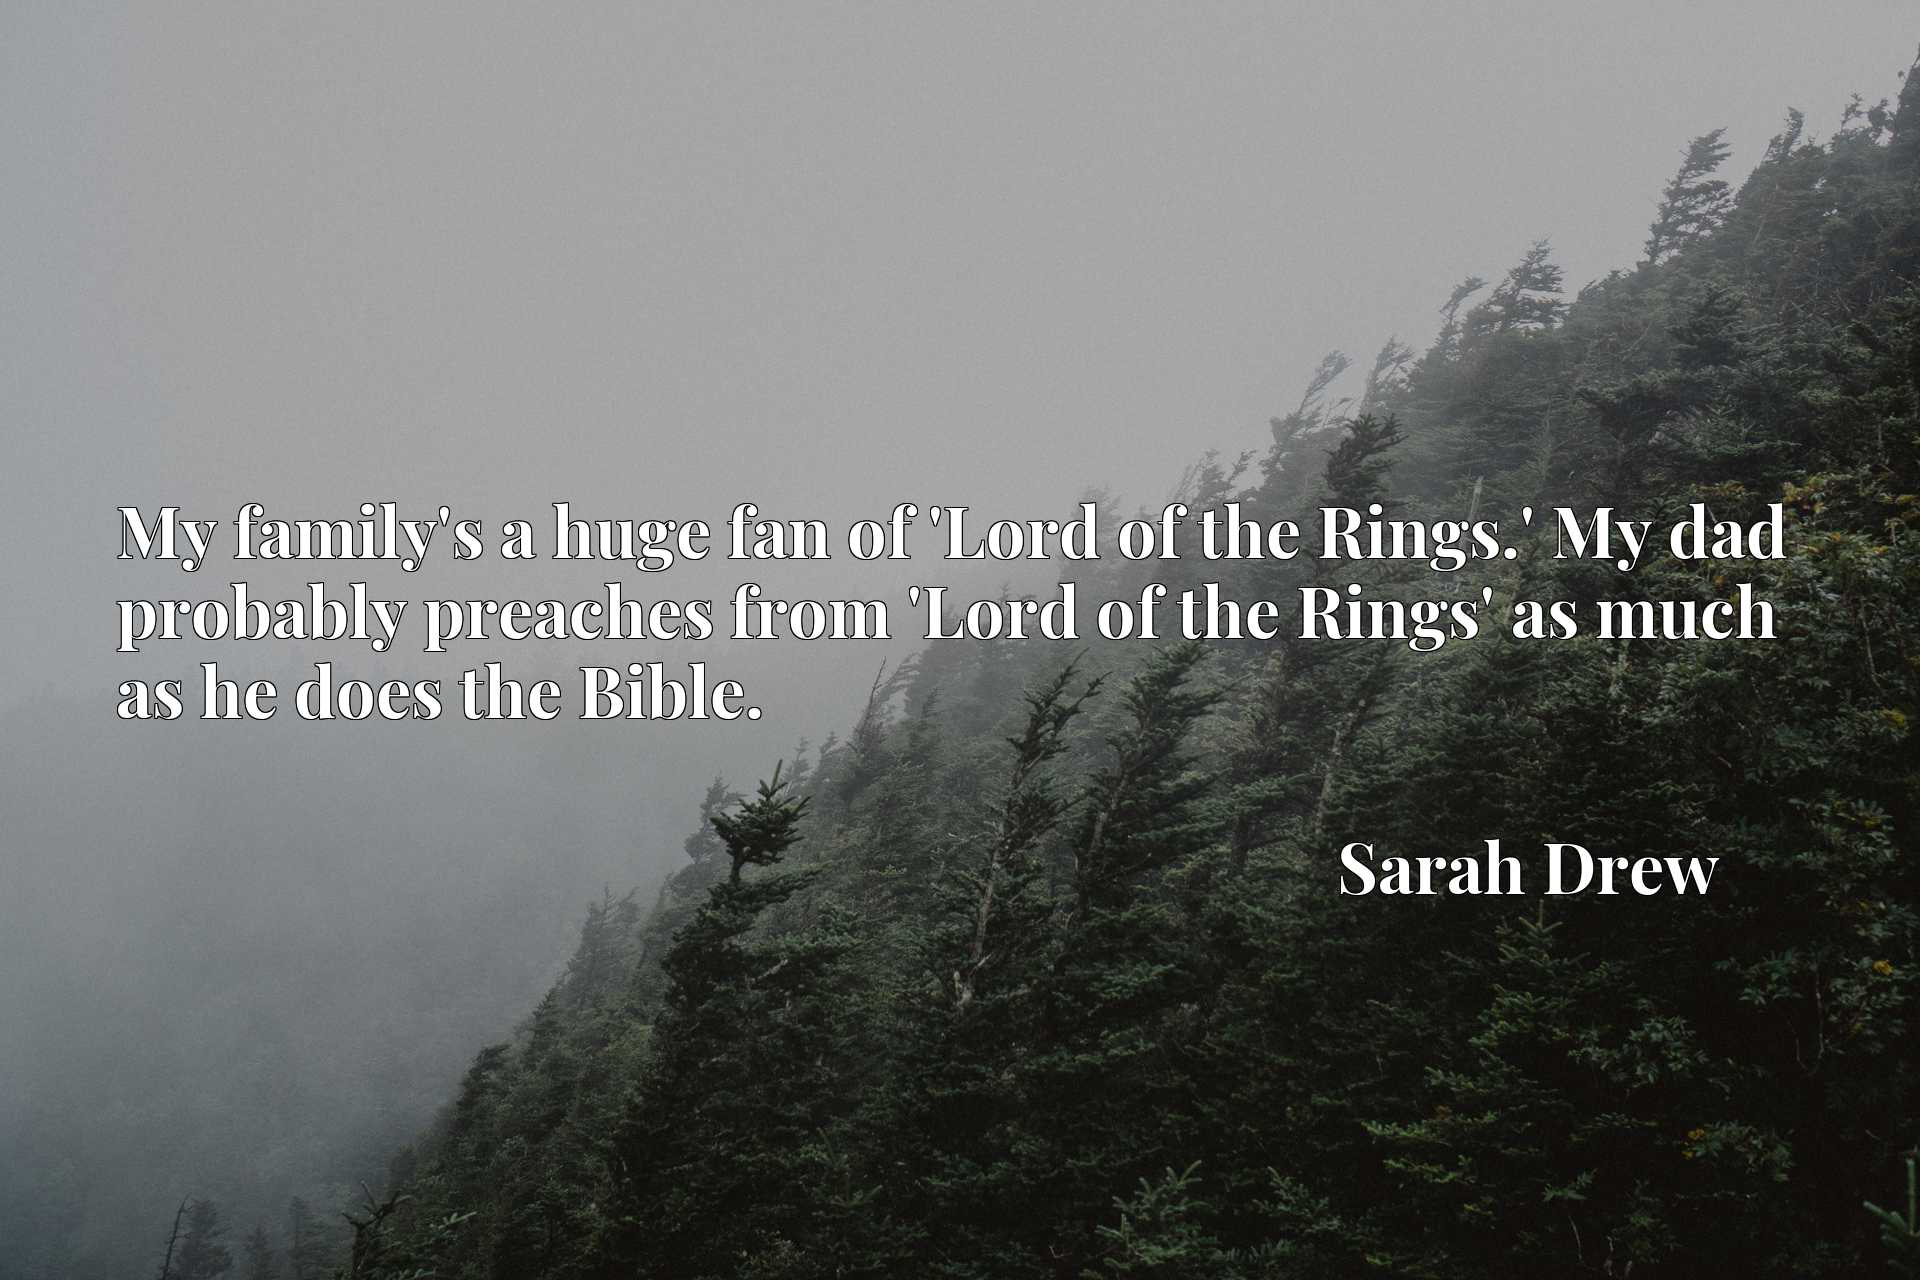 My family's a huge fan of 'Lord of the Rings.' My dad probably preaches from 'Lord of the Rings' as much as he does the Bible.